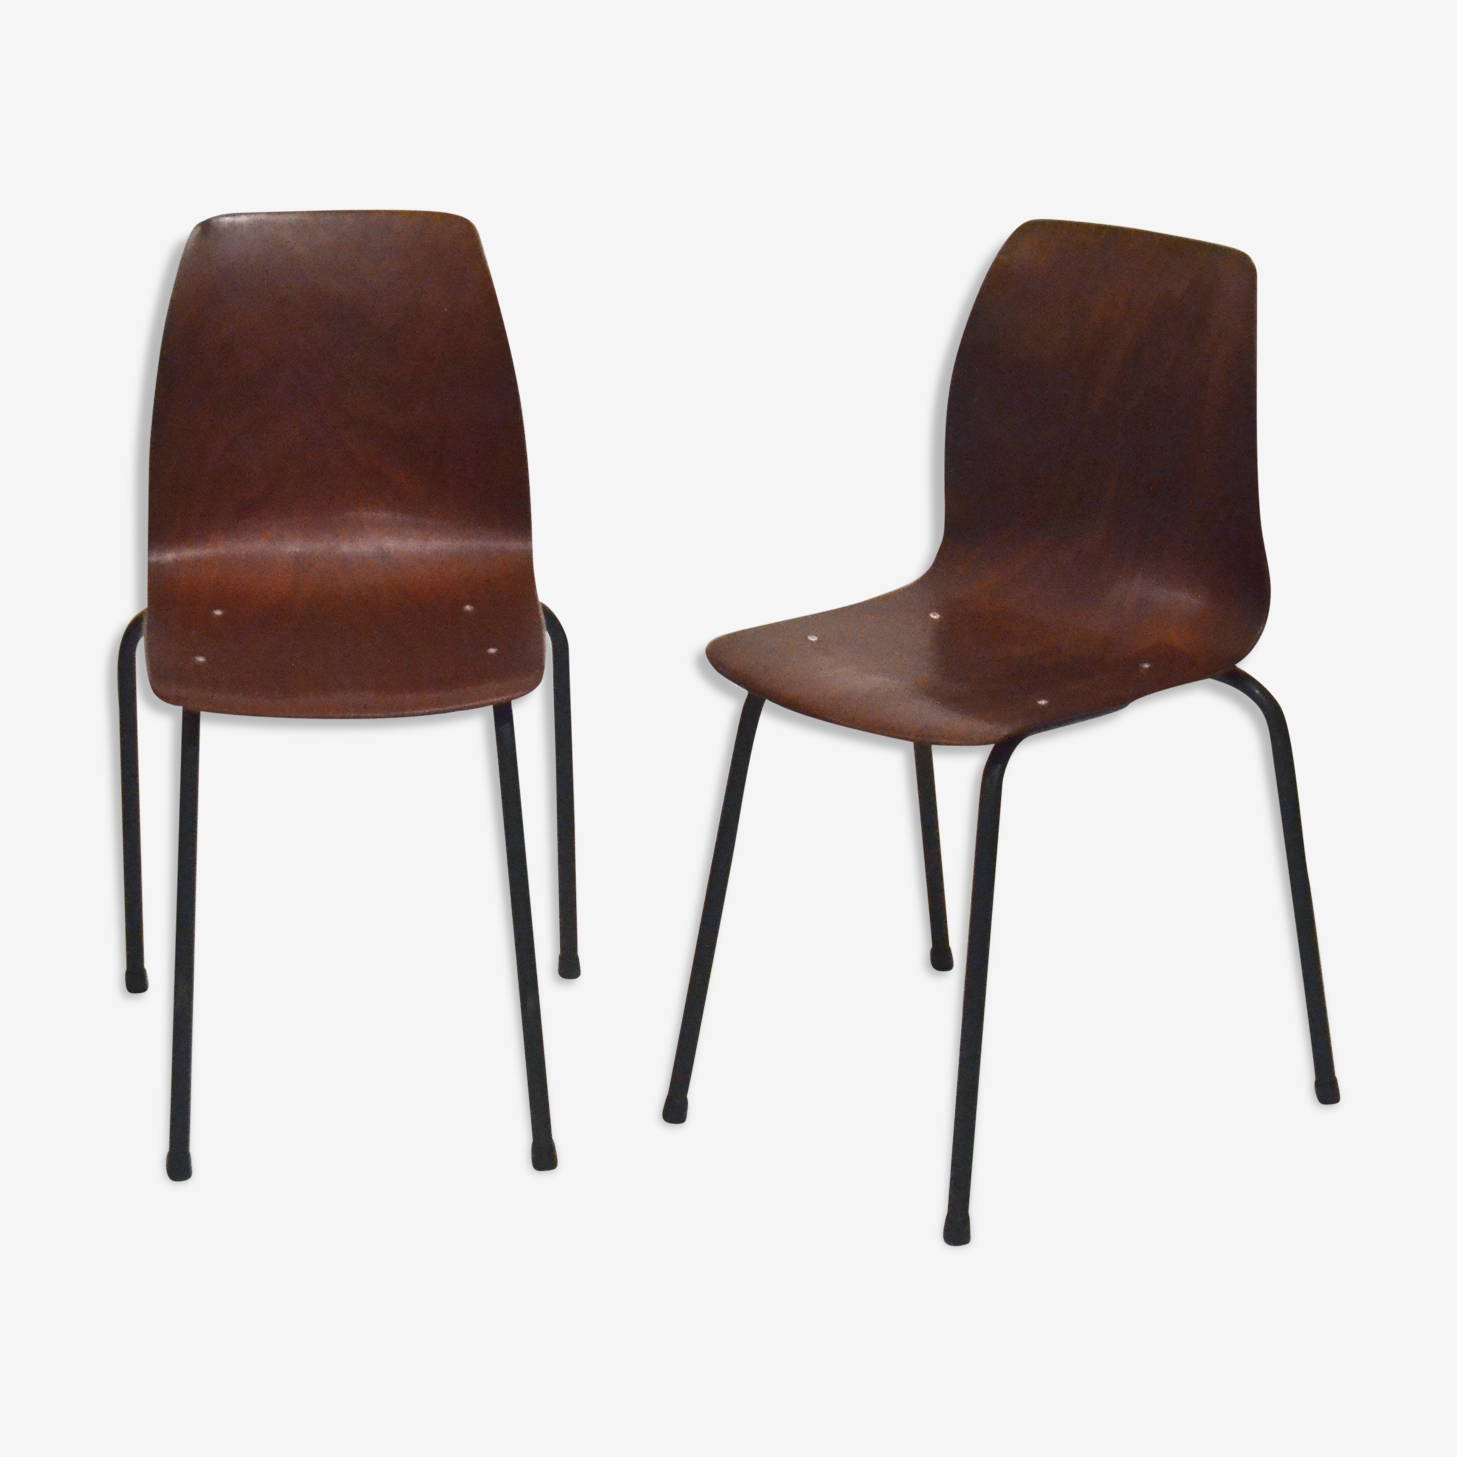 Pair of pagholz stacking chairs